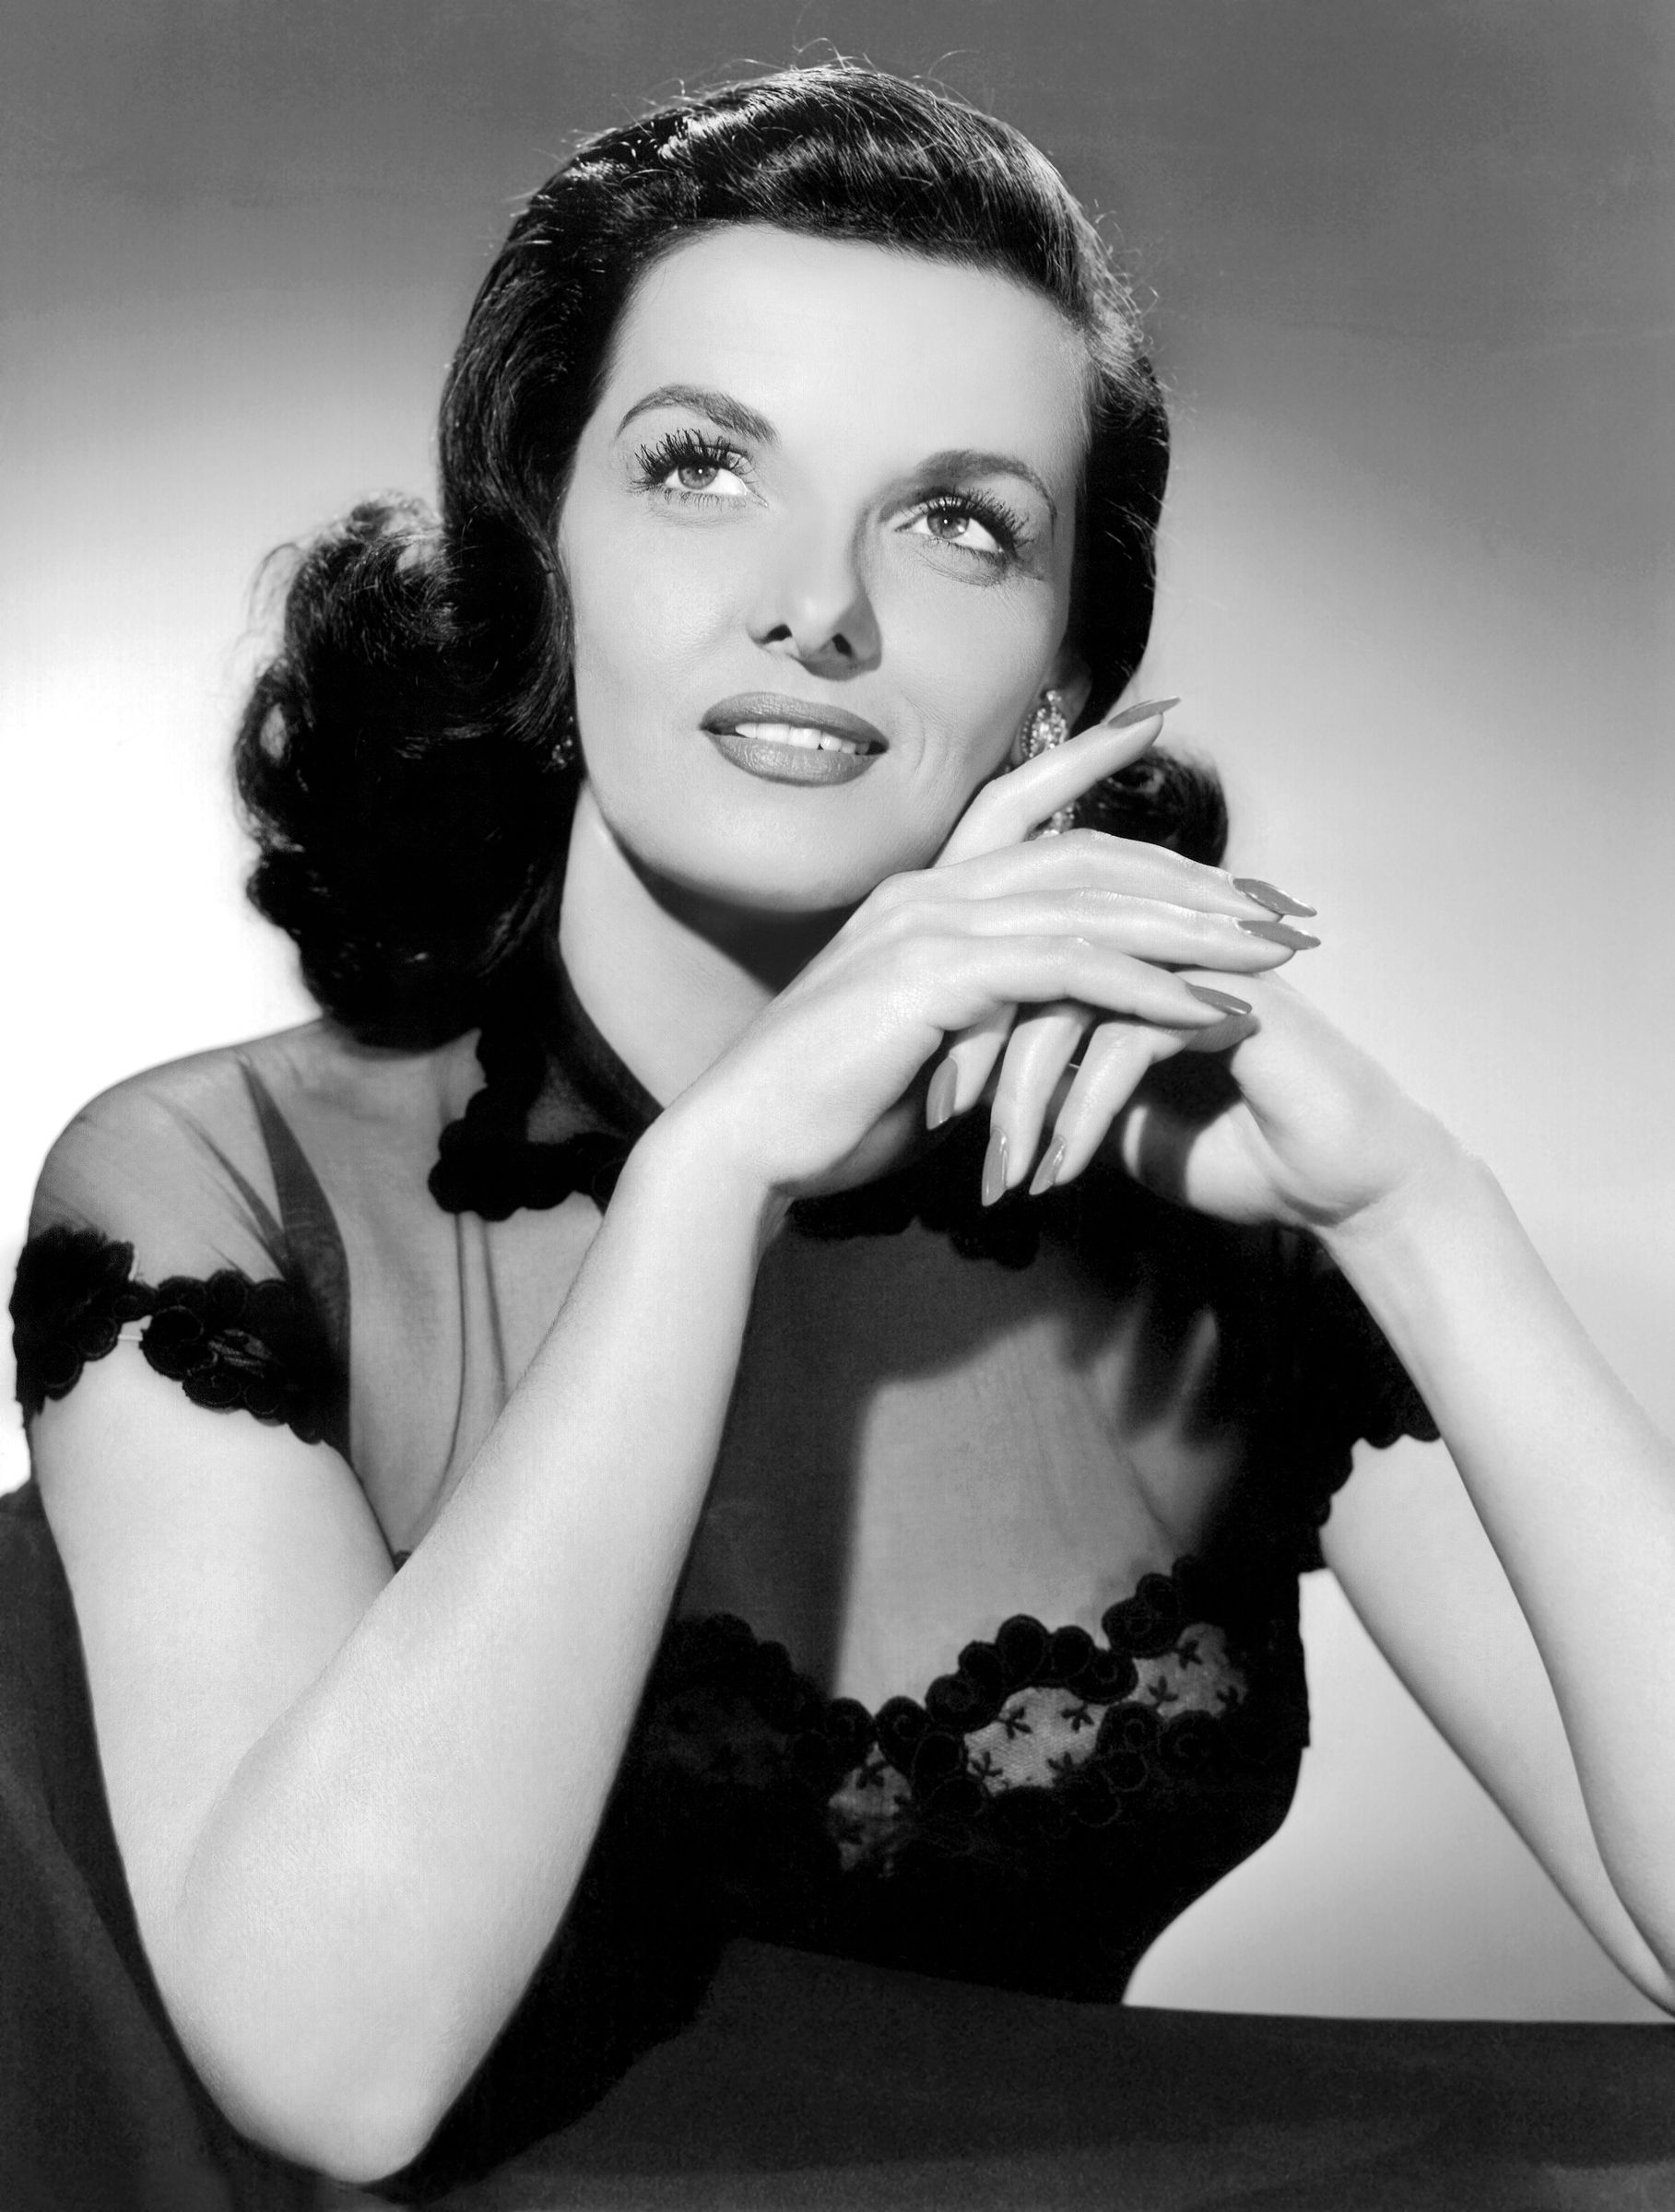 jane russell | Jane Russell-Annex | Classic Beauties | Pinterest ...